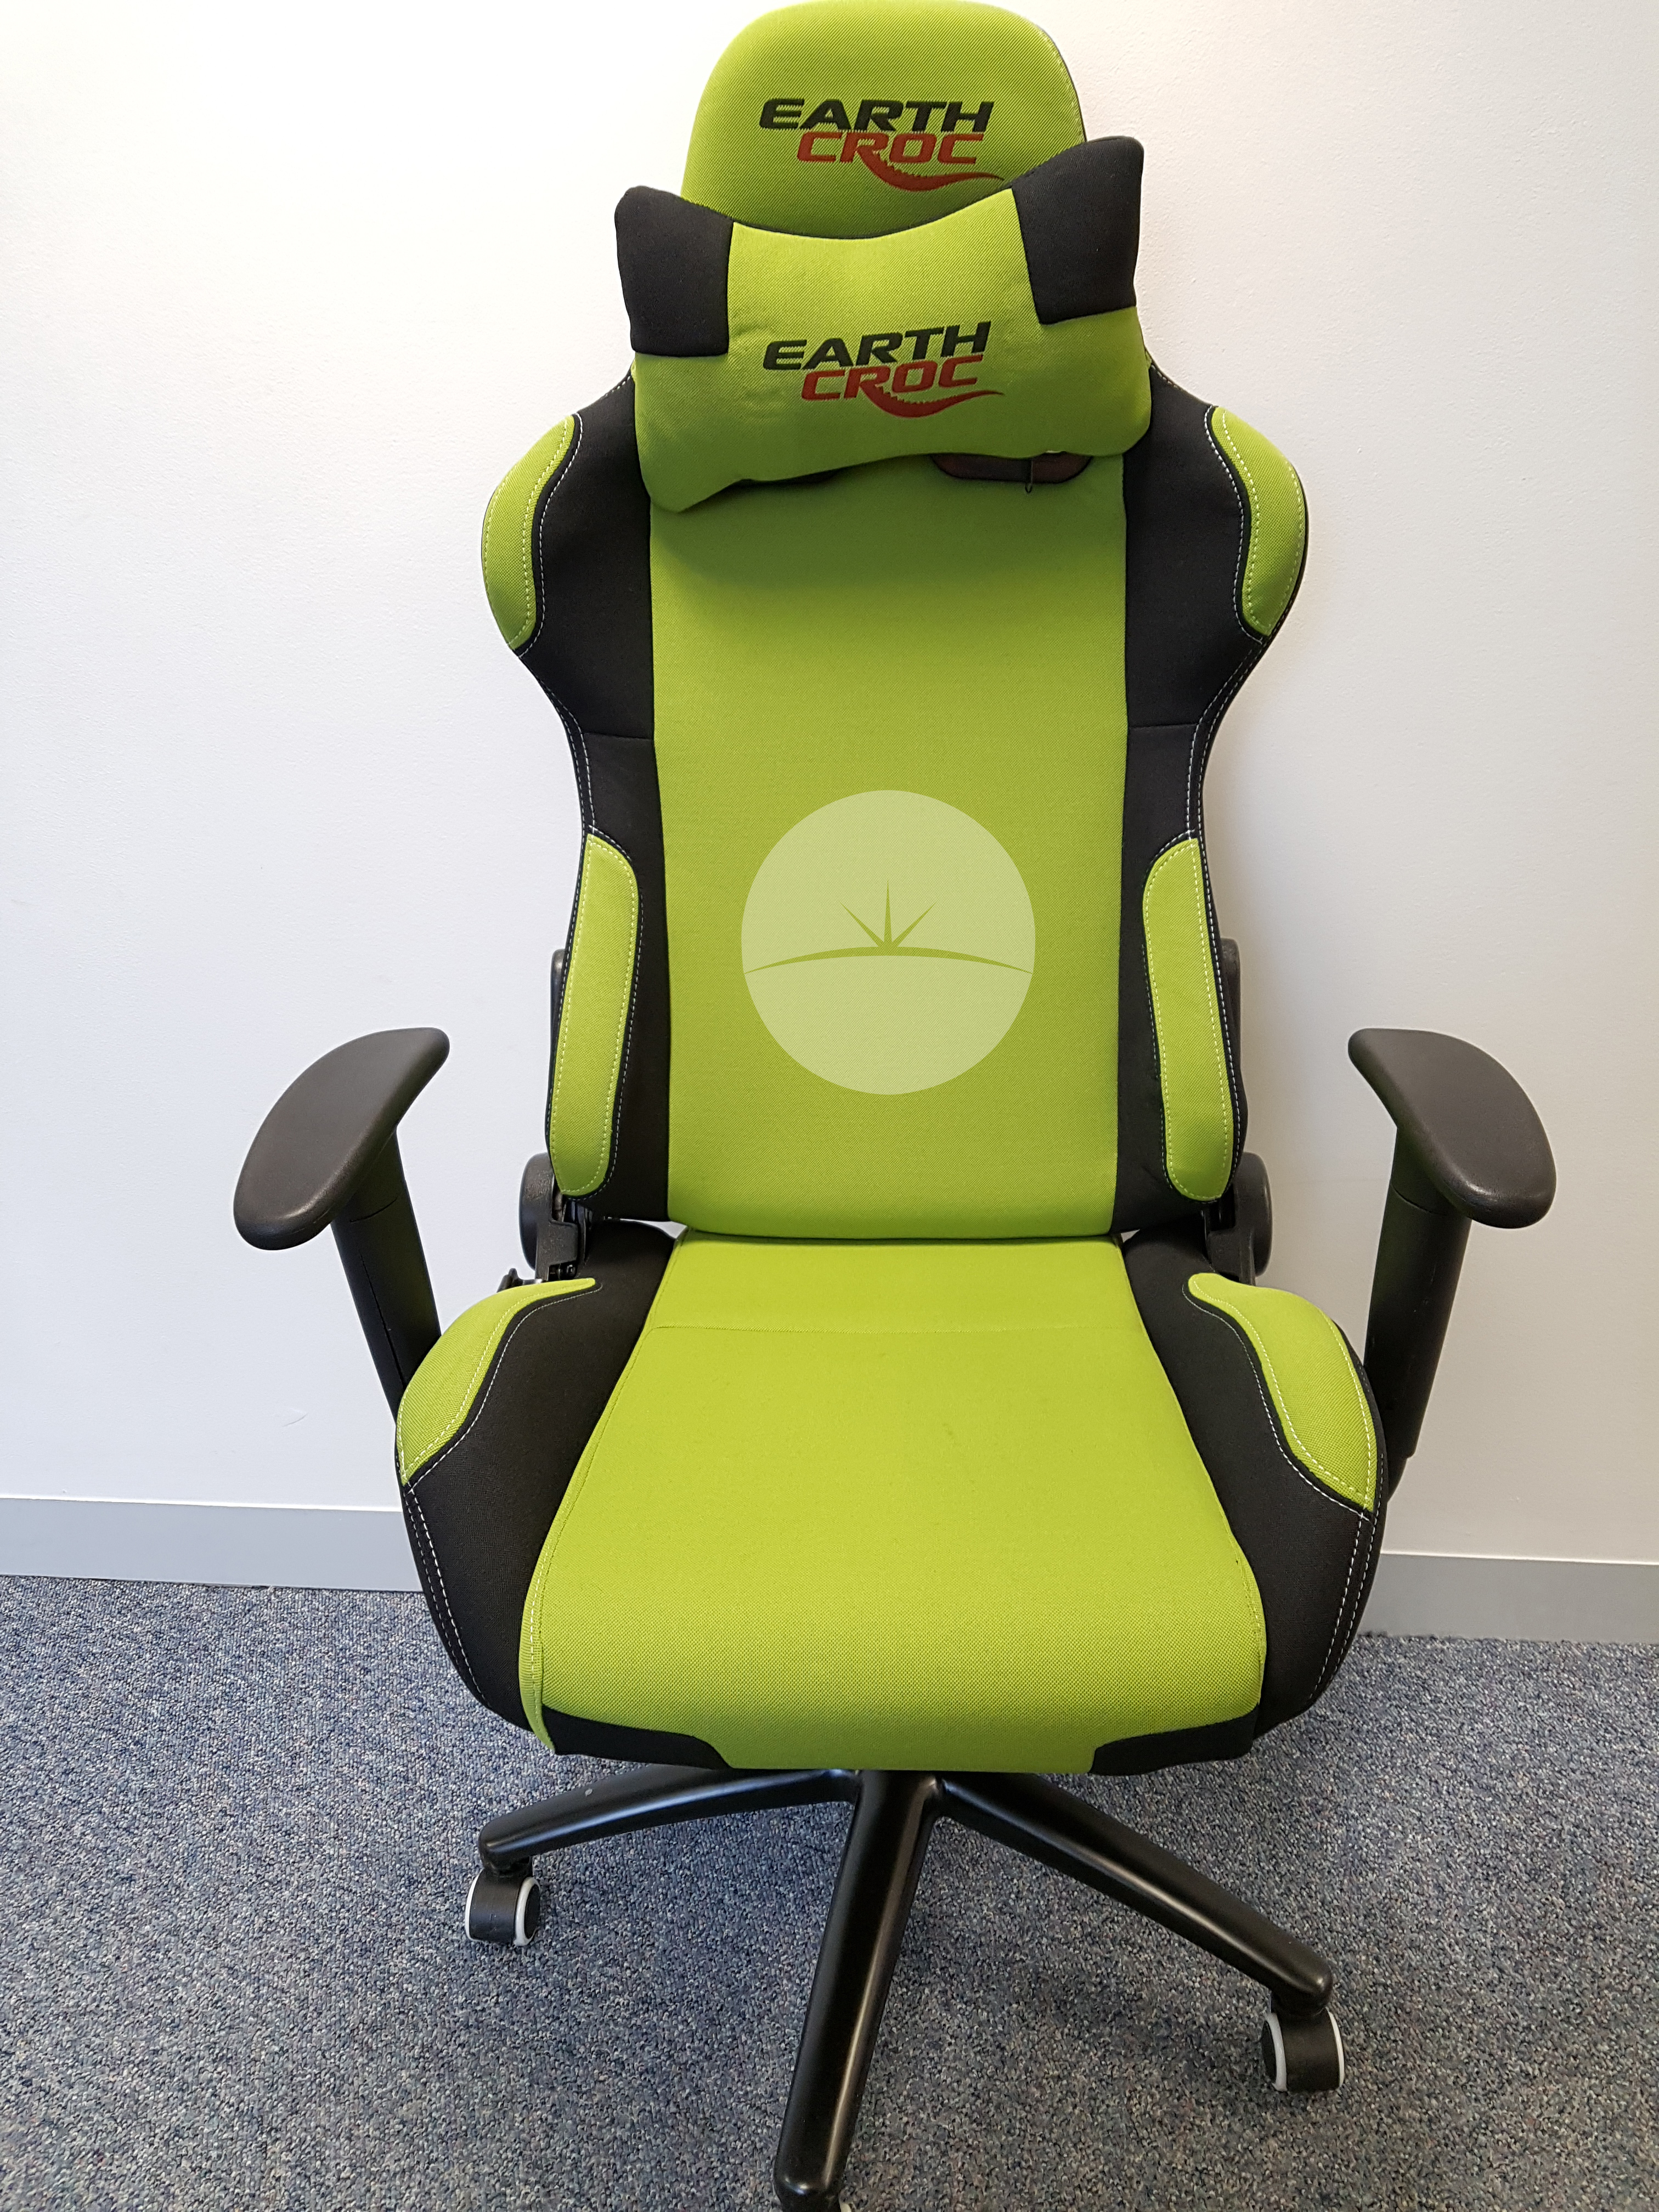 EarthCroc Professional fice Gaming Chair Review